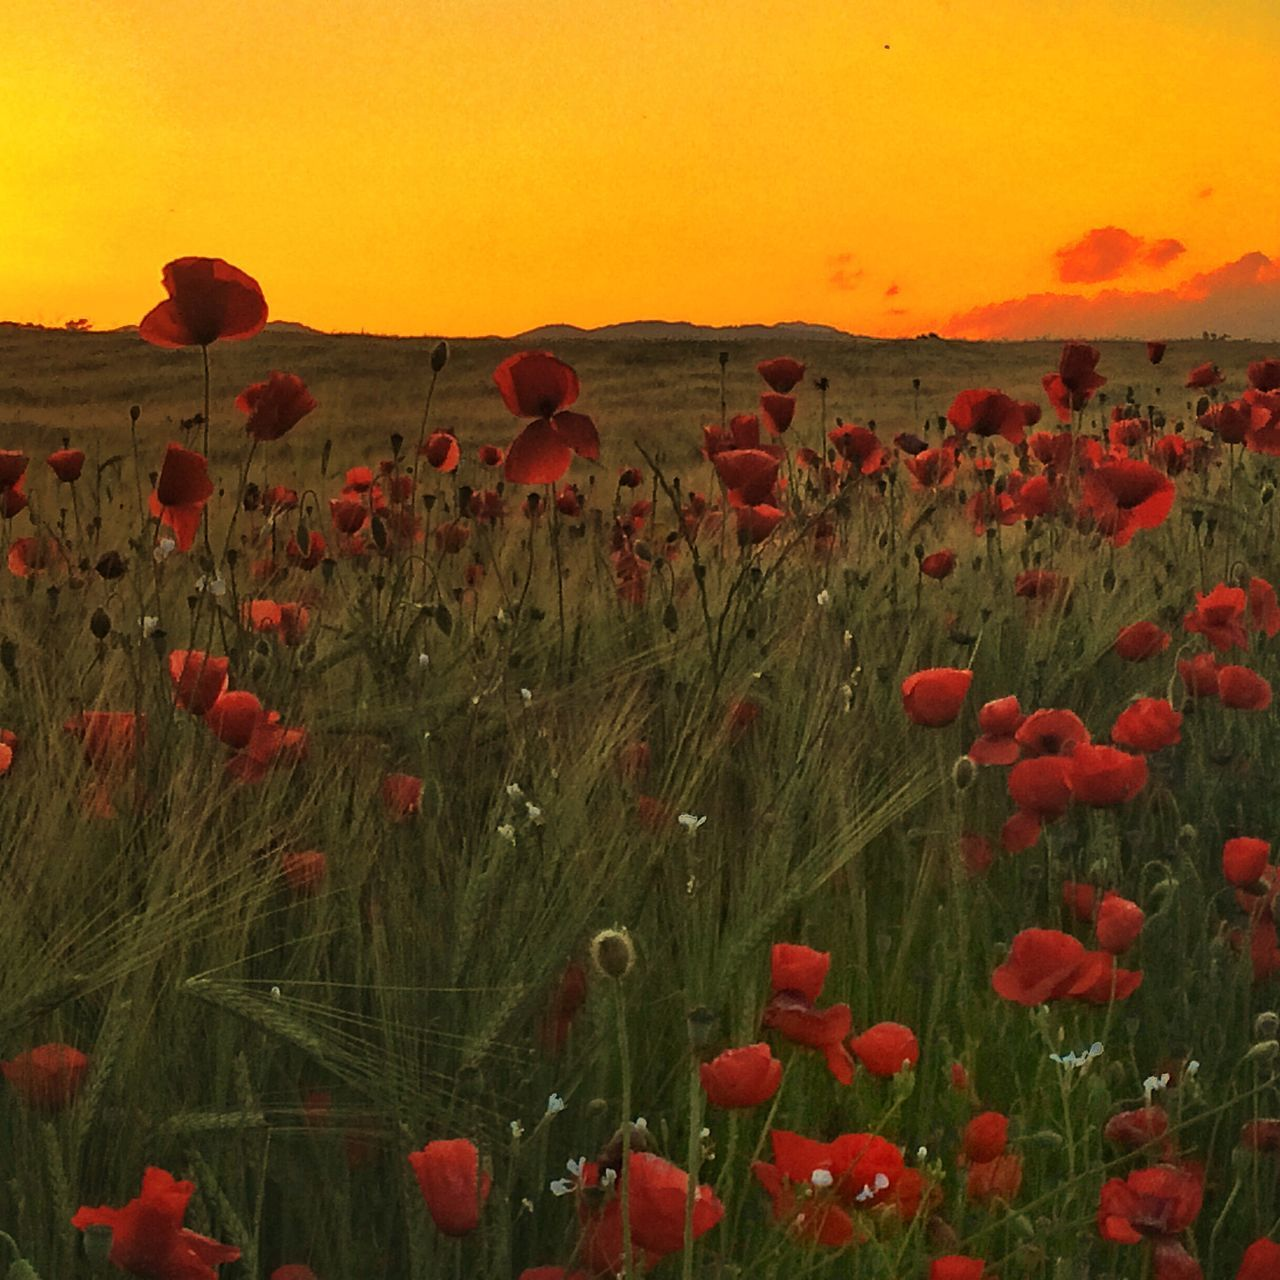 Red Poppies Blooming On Field During Sunset